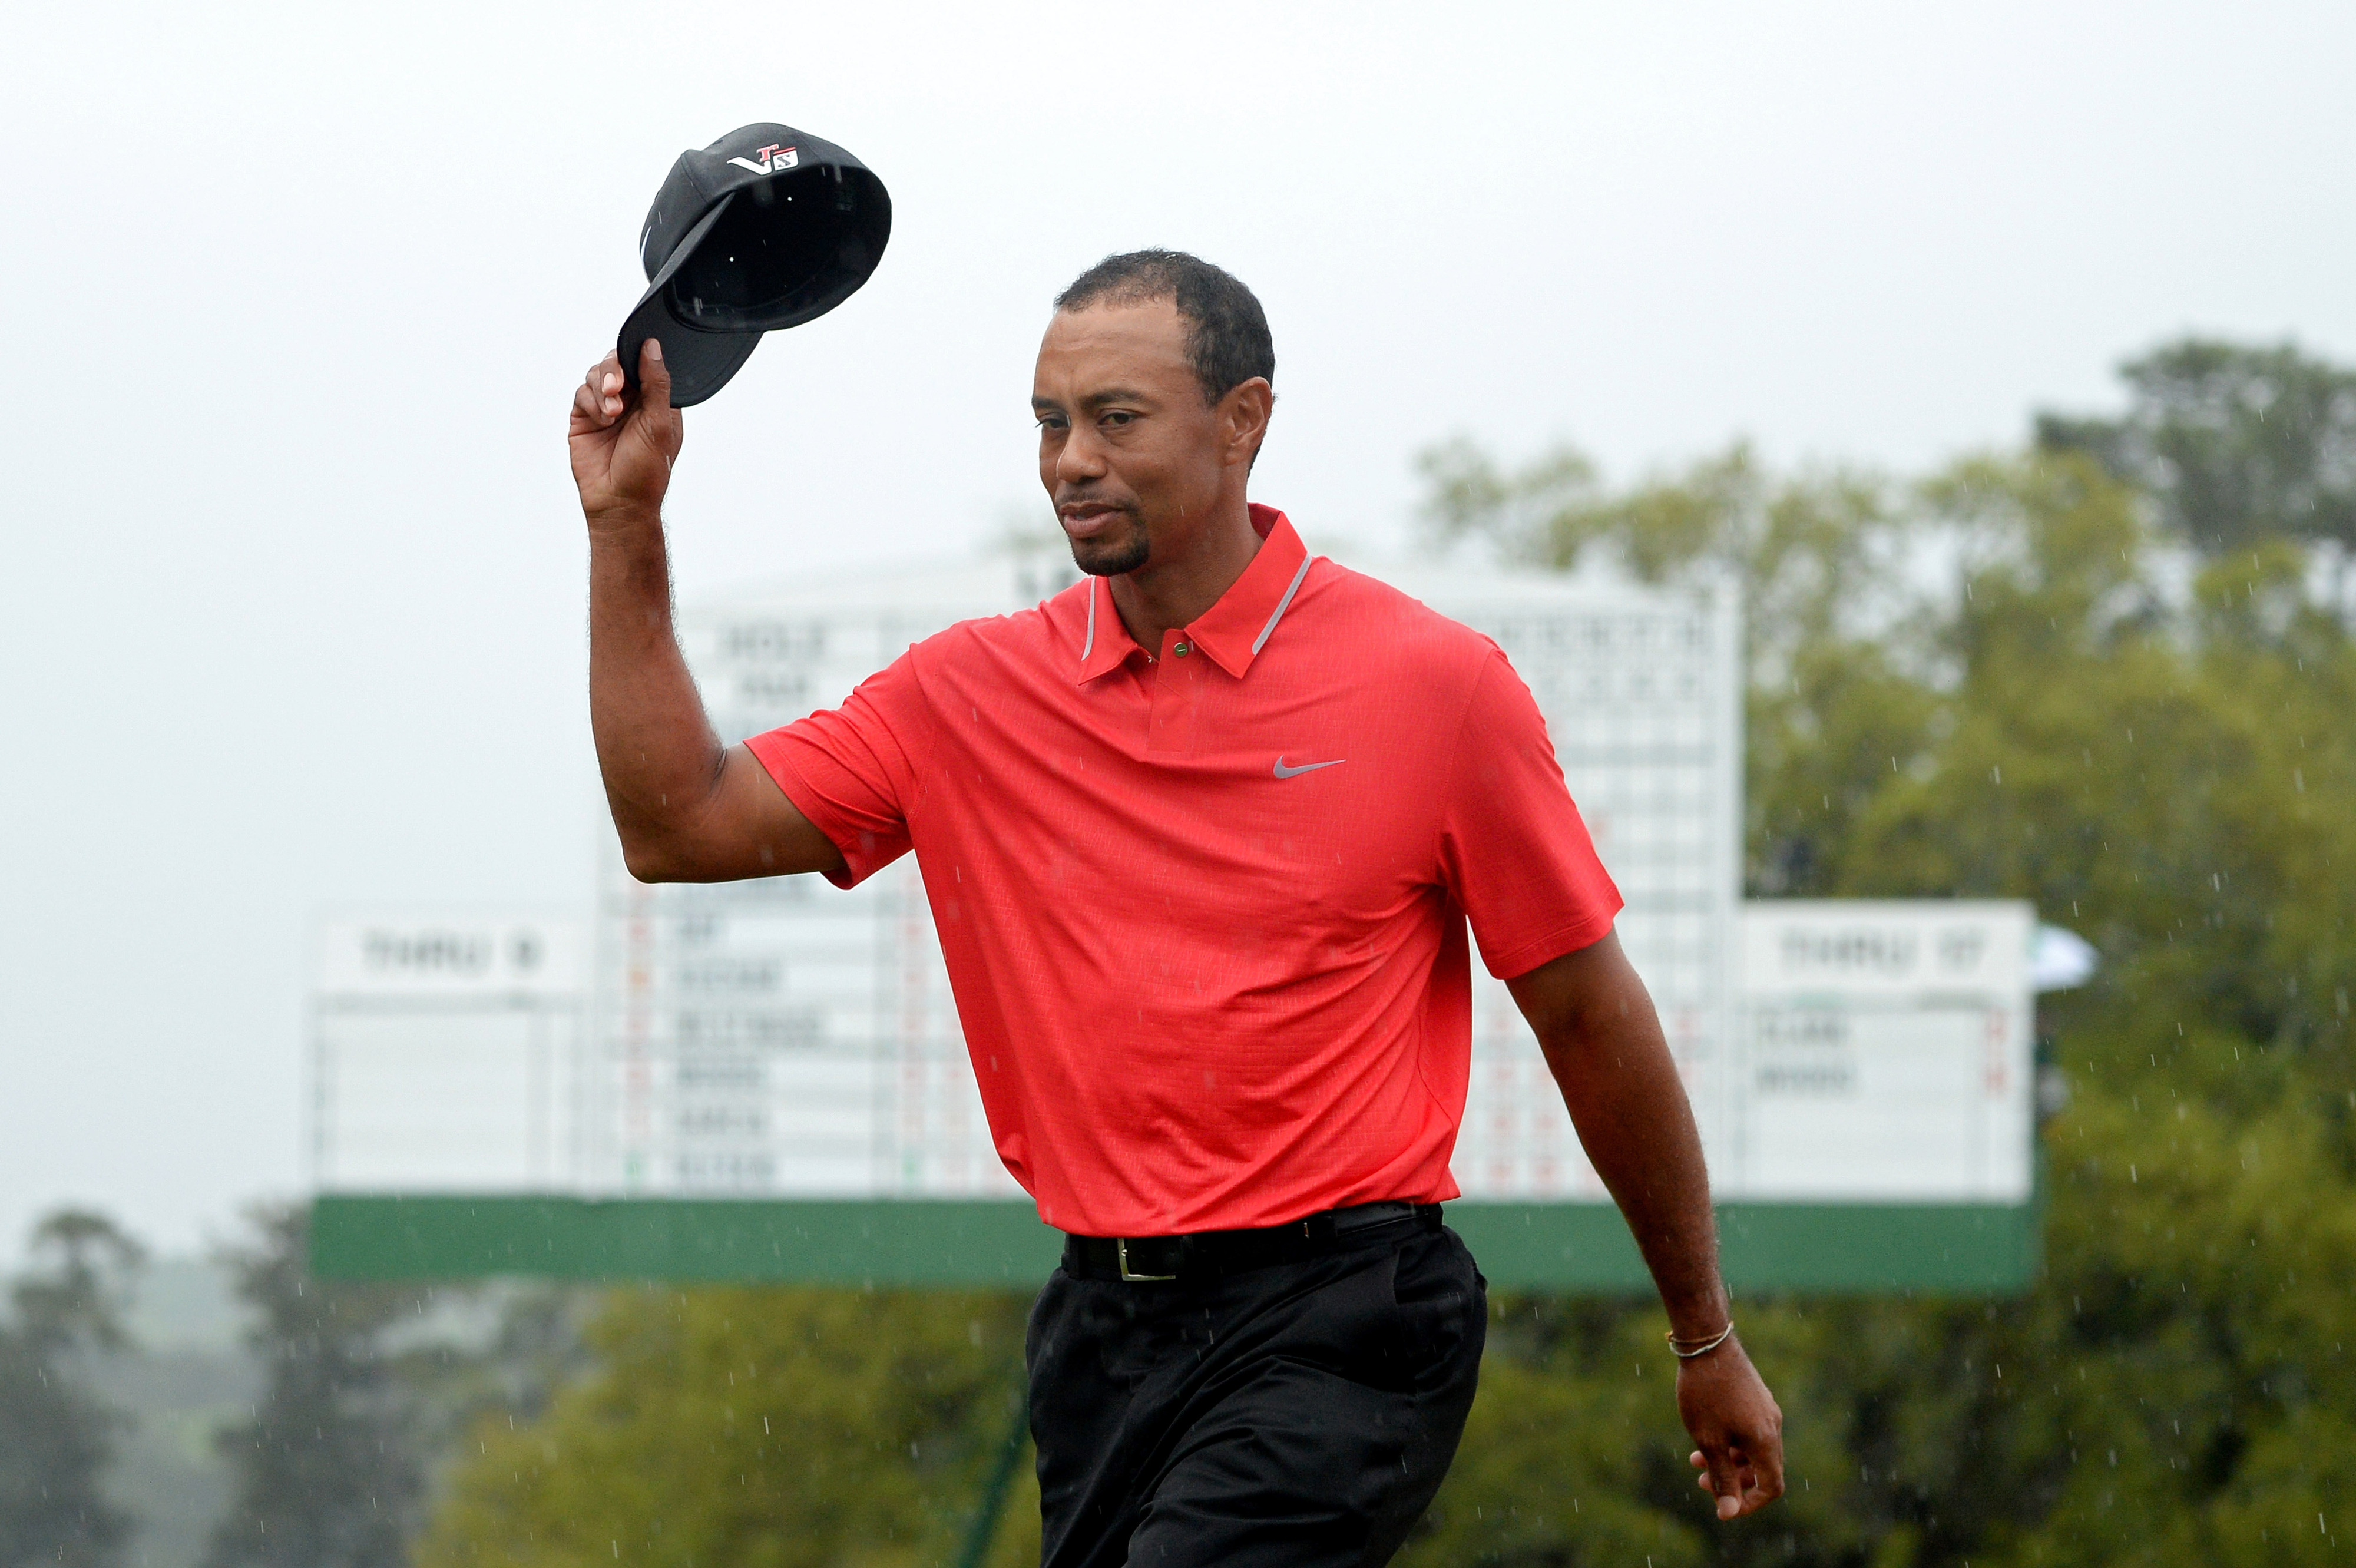 Jack Nicklaus 'feels bad' for Tiger Woods, whose absence looms large over Augusta National